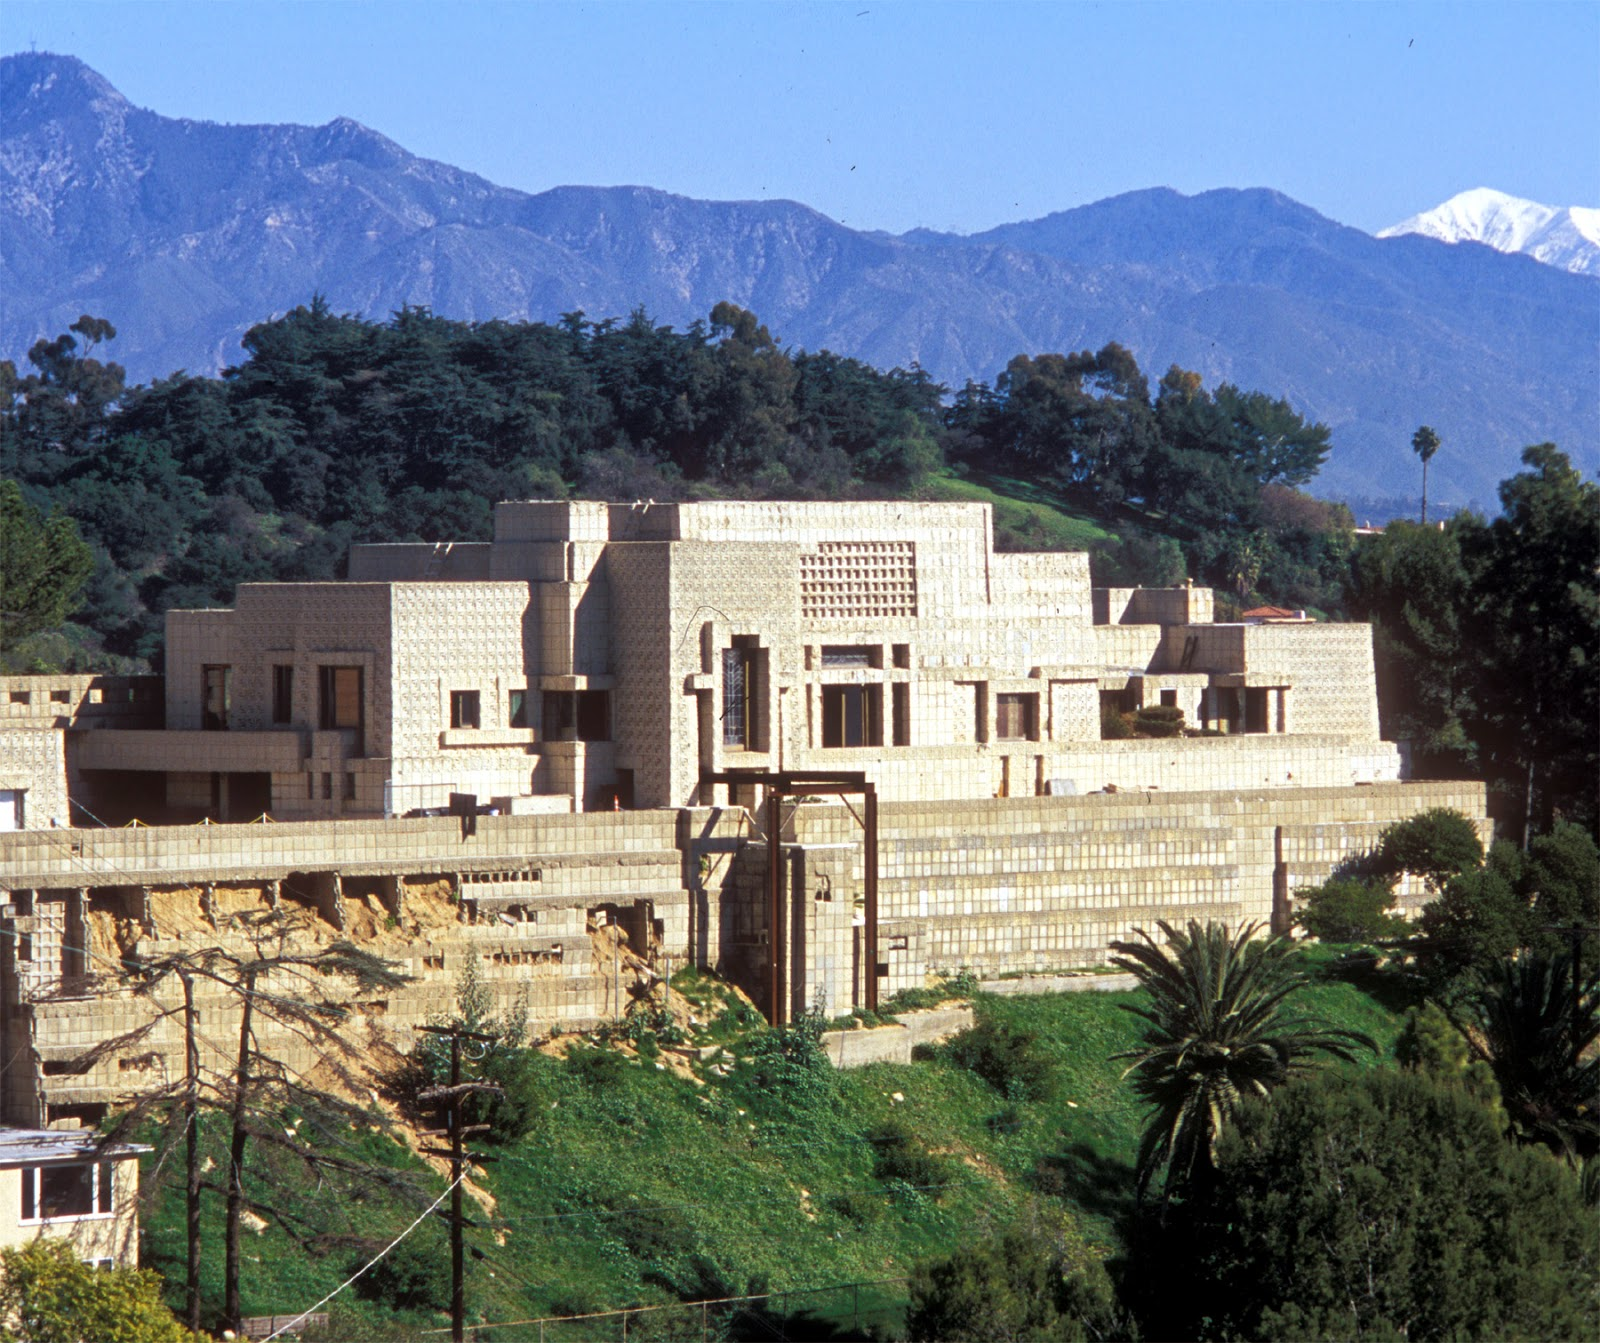 L A Houses: The Art Of Architecture: HOUSES 101: Ennis House